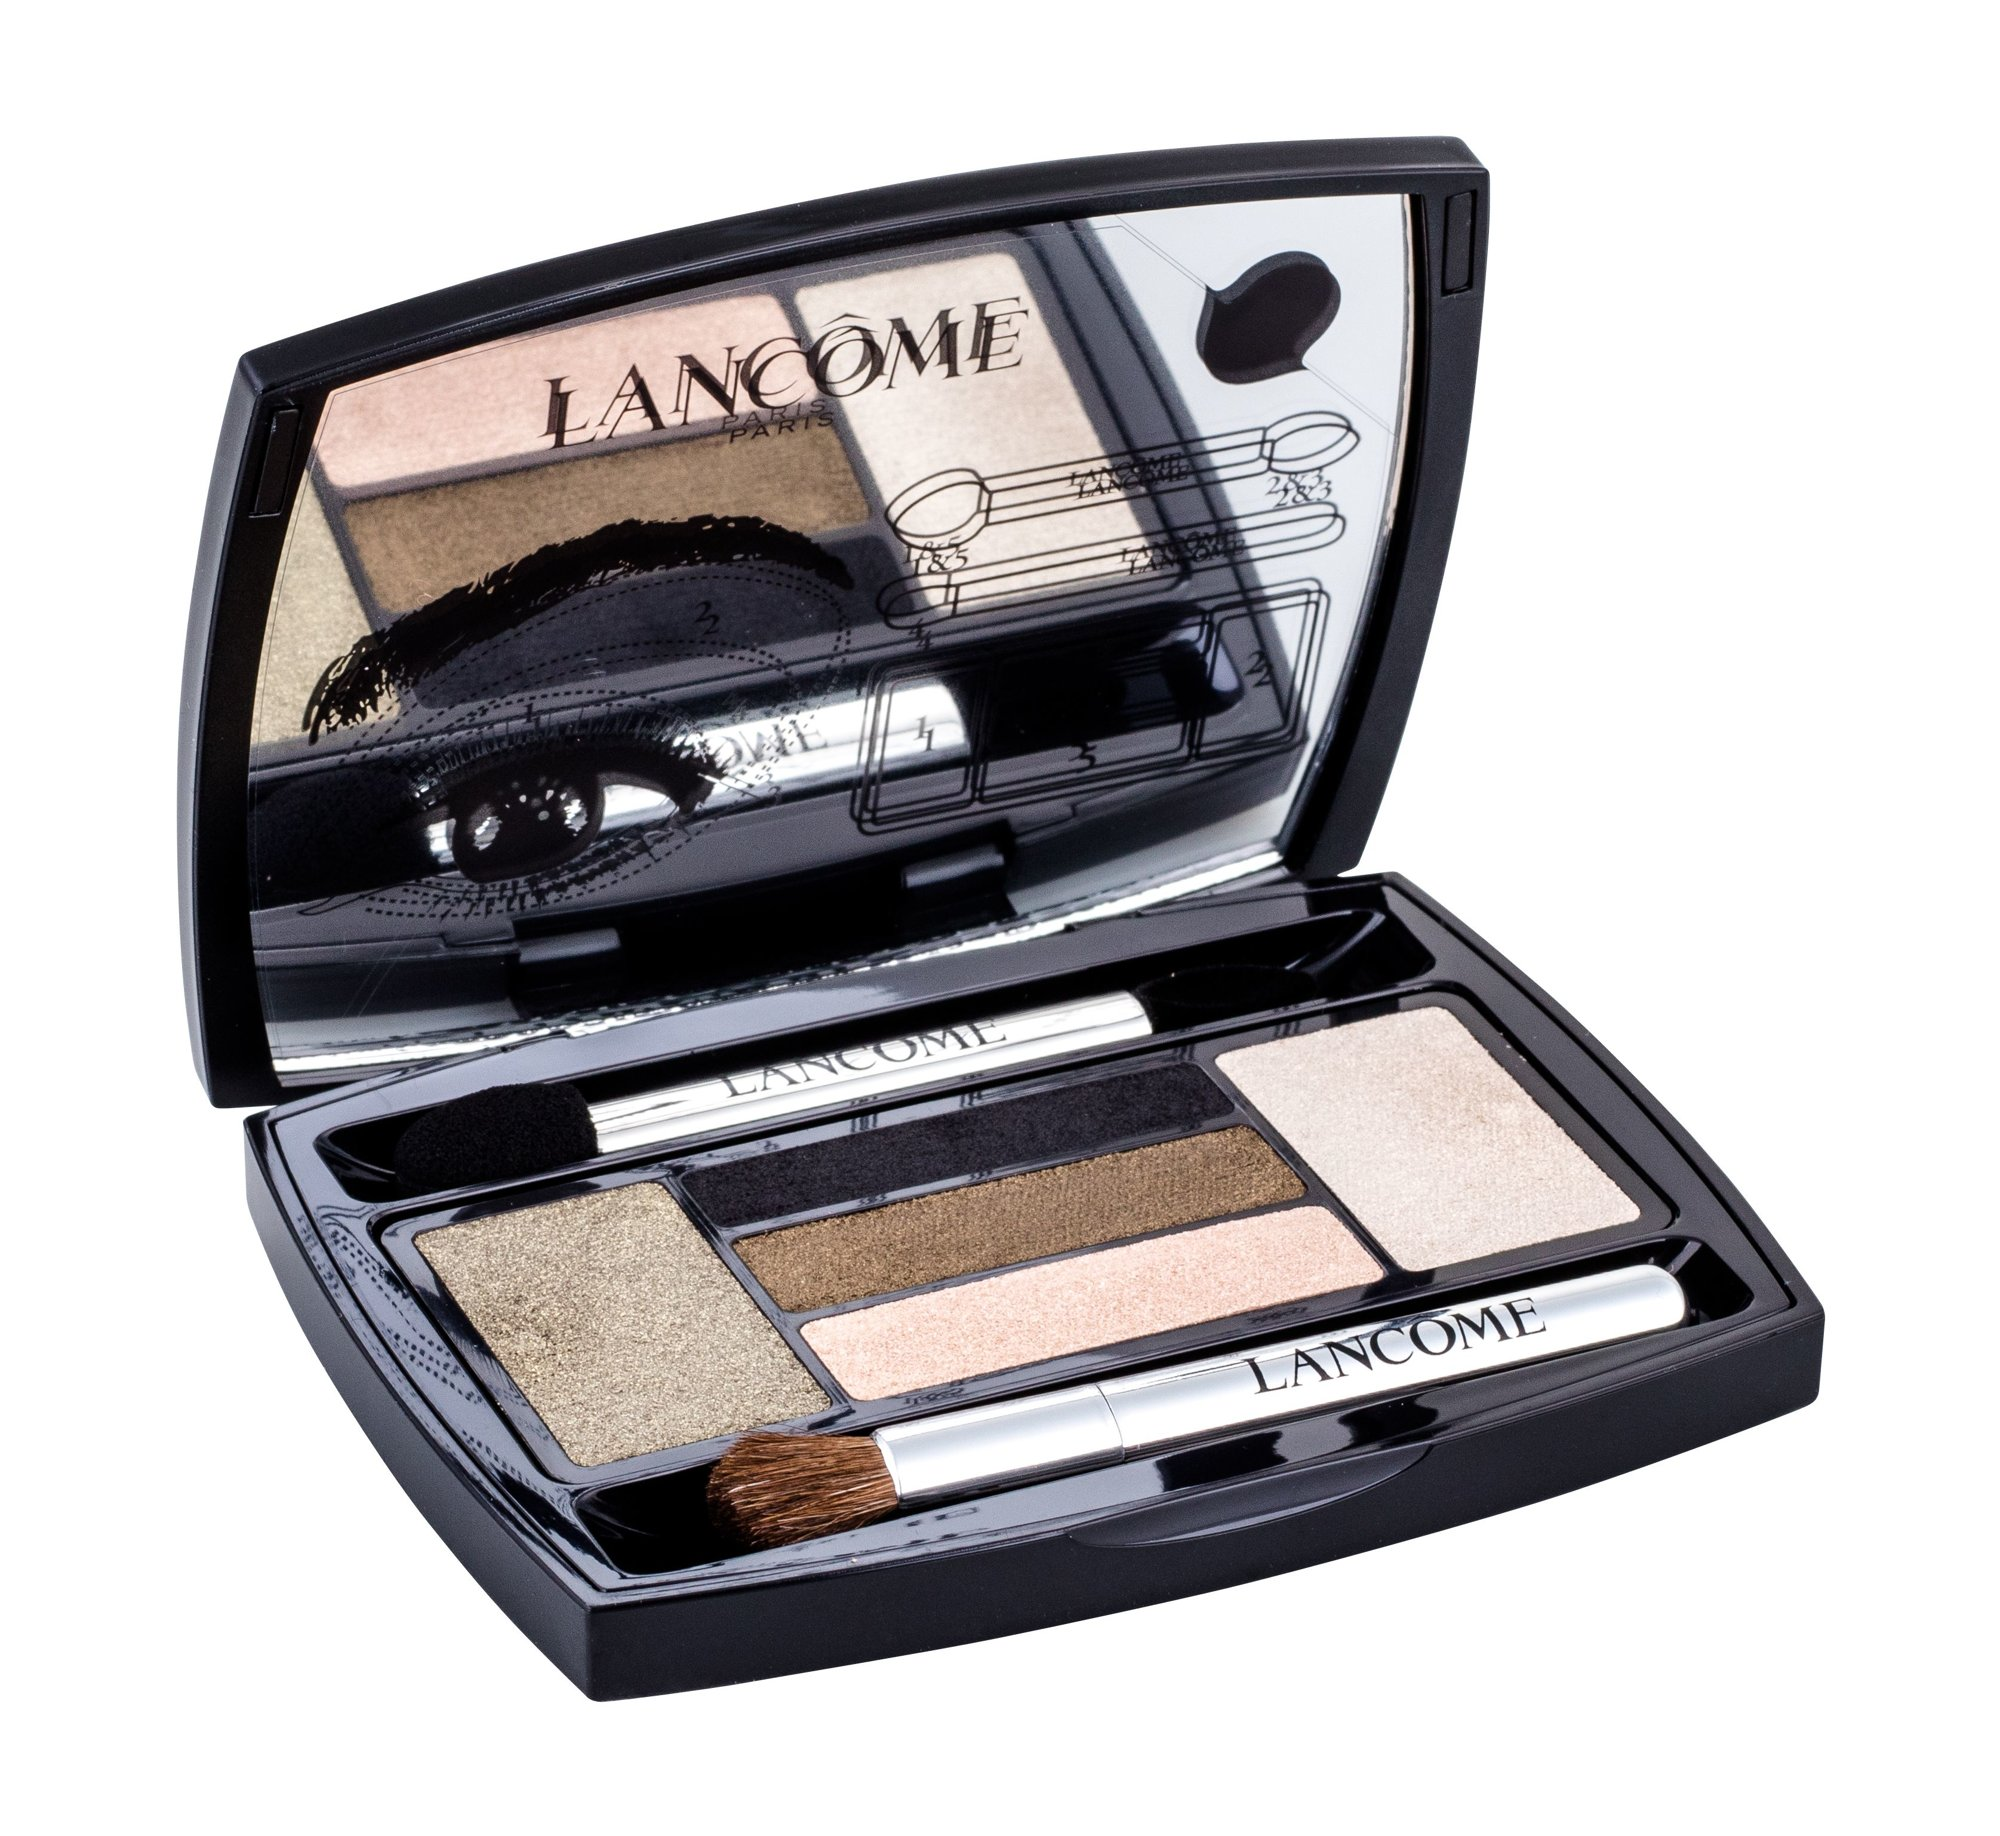 Lancôme Hypnose Star Eyes Eye Shadow 2,7ml ST2 Kaki Chic 5 Color Palette